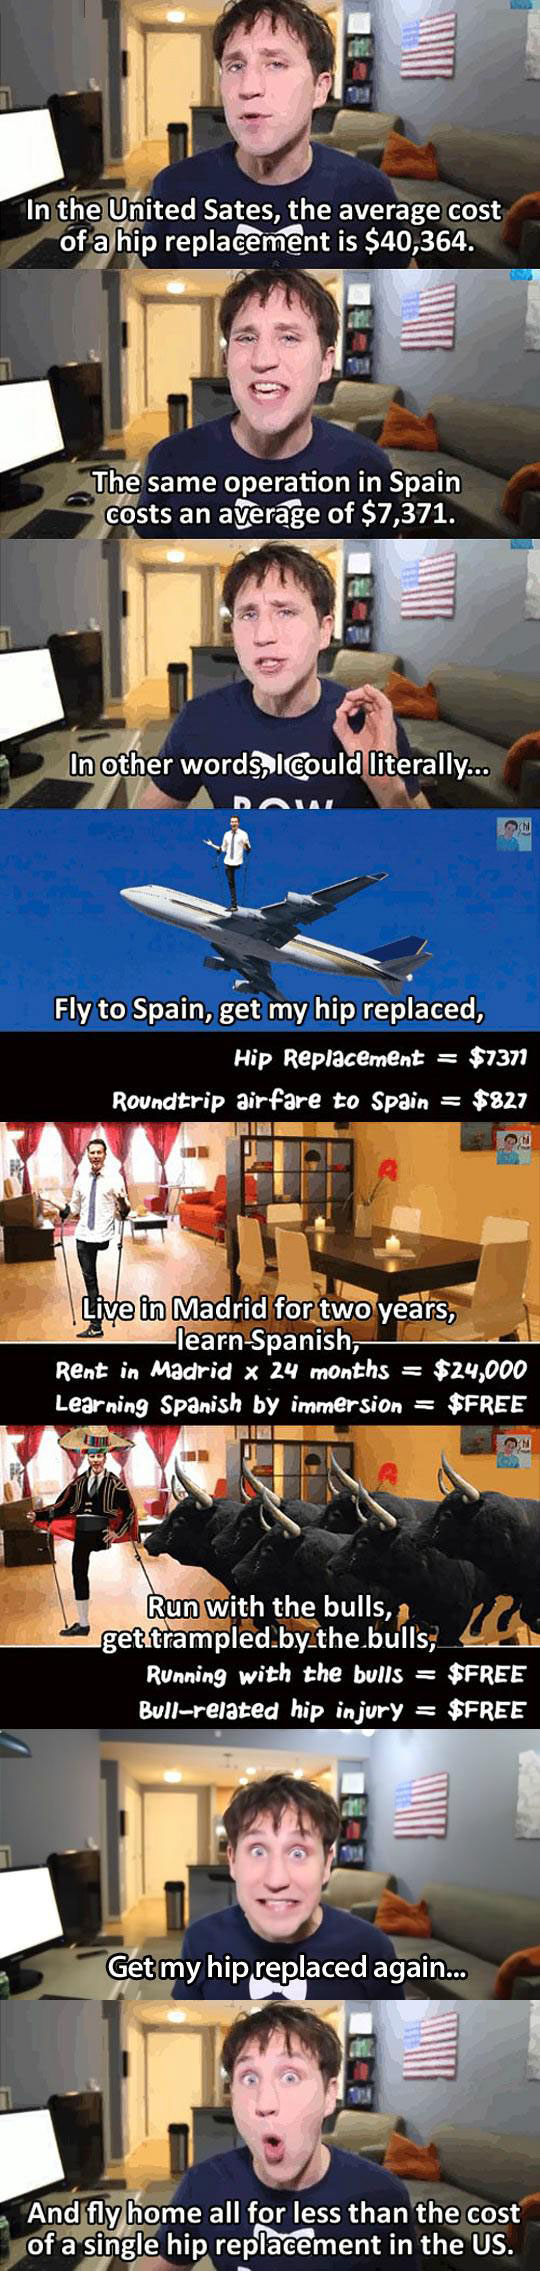 in the united states the average cost of a hip replacement is $40364, the same operation in spain costs an average of $7371